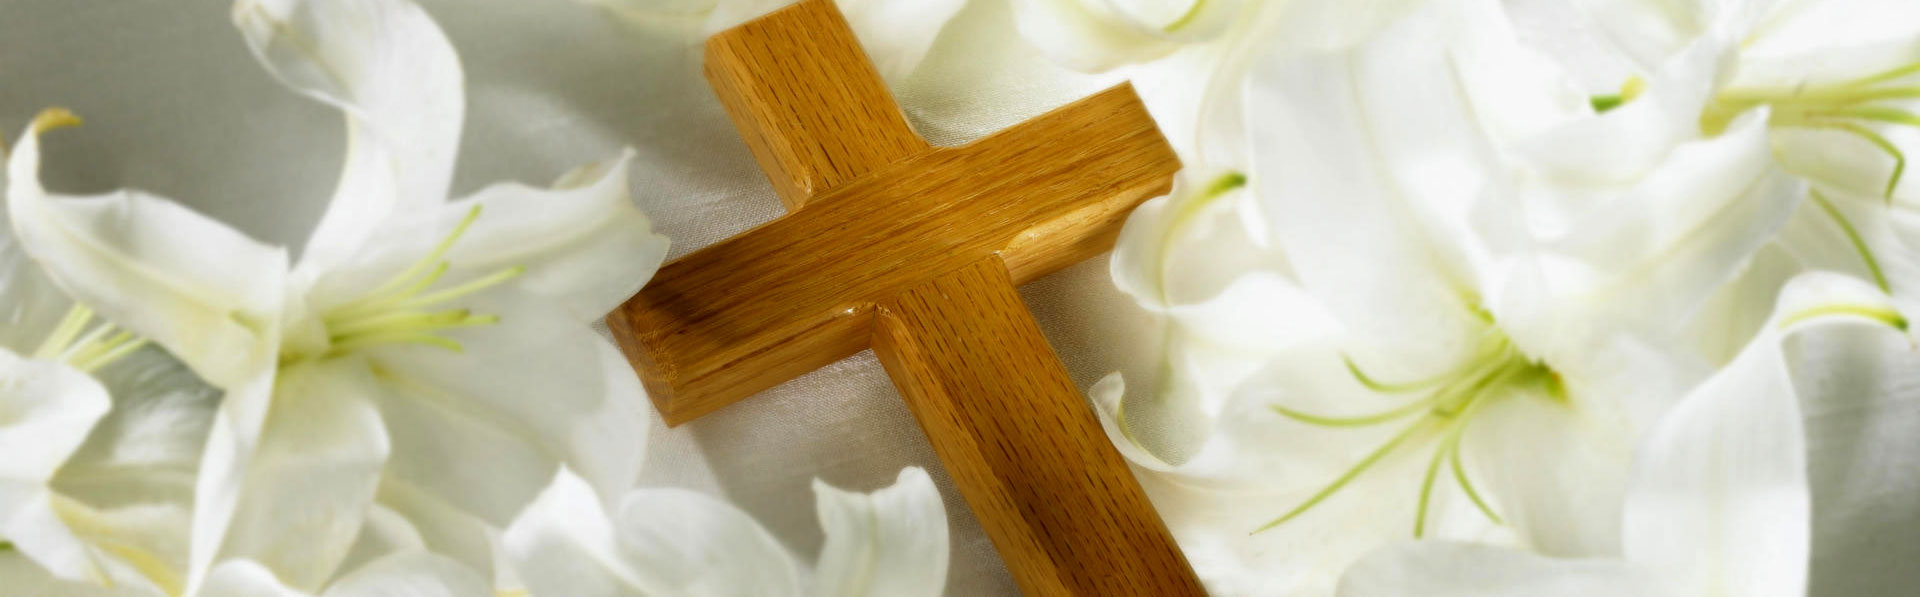 Wallpapersxl-Jesus-On-The-Cross-Flower-Lily-Nature-Religious-263769-1920x1080